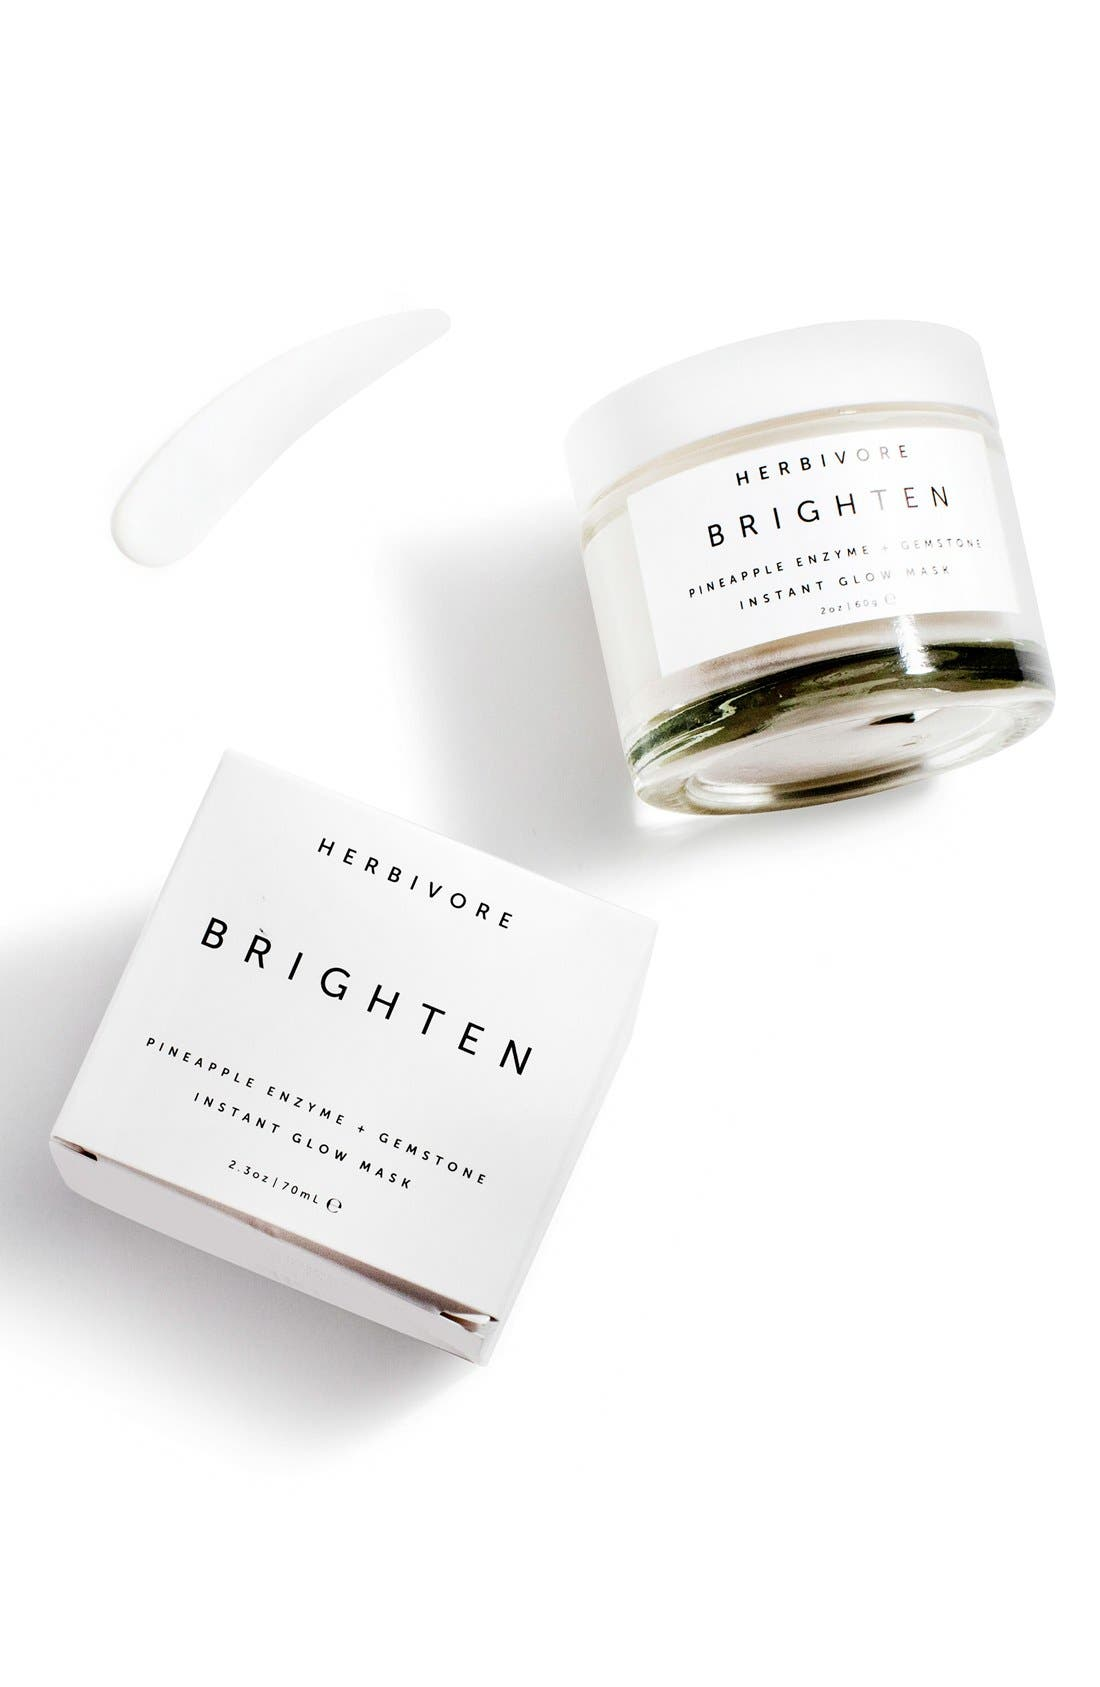 Brighten Pineapple Enzyme + Gemstone Instant Glow Mask,                             Alternate thumbnail 3, color,                             NO COLOR